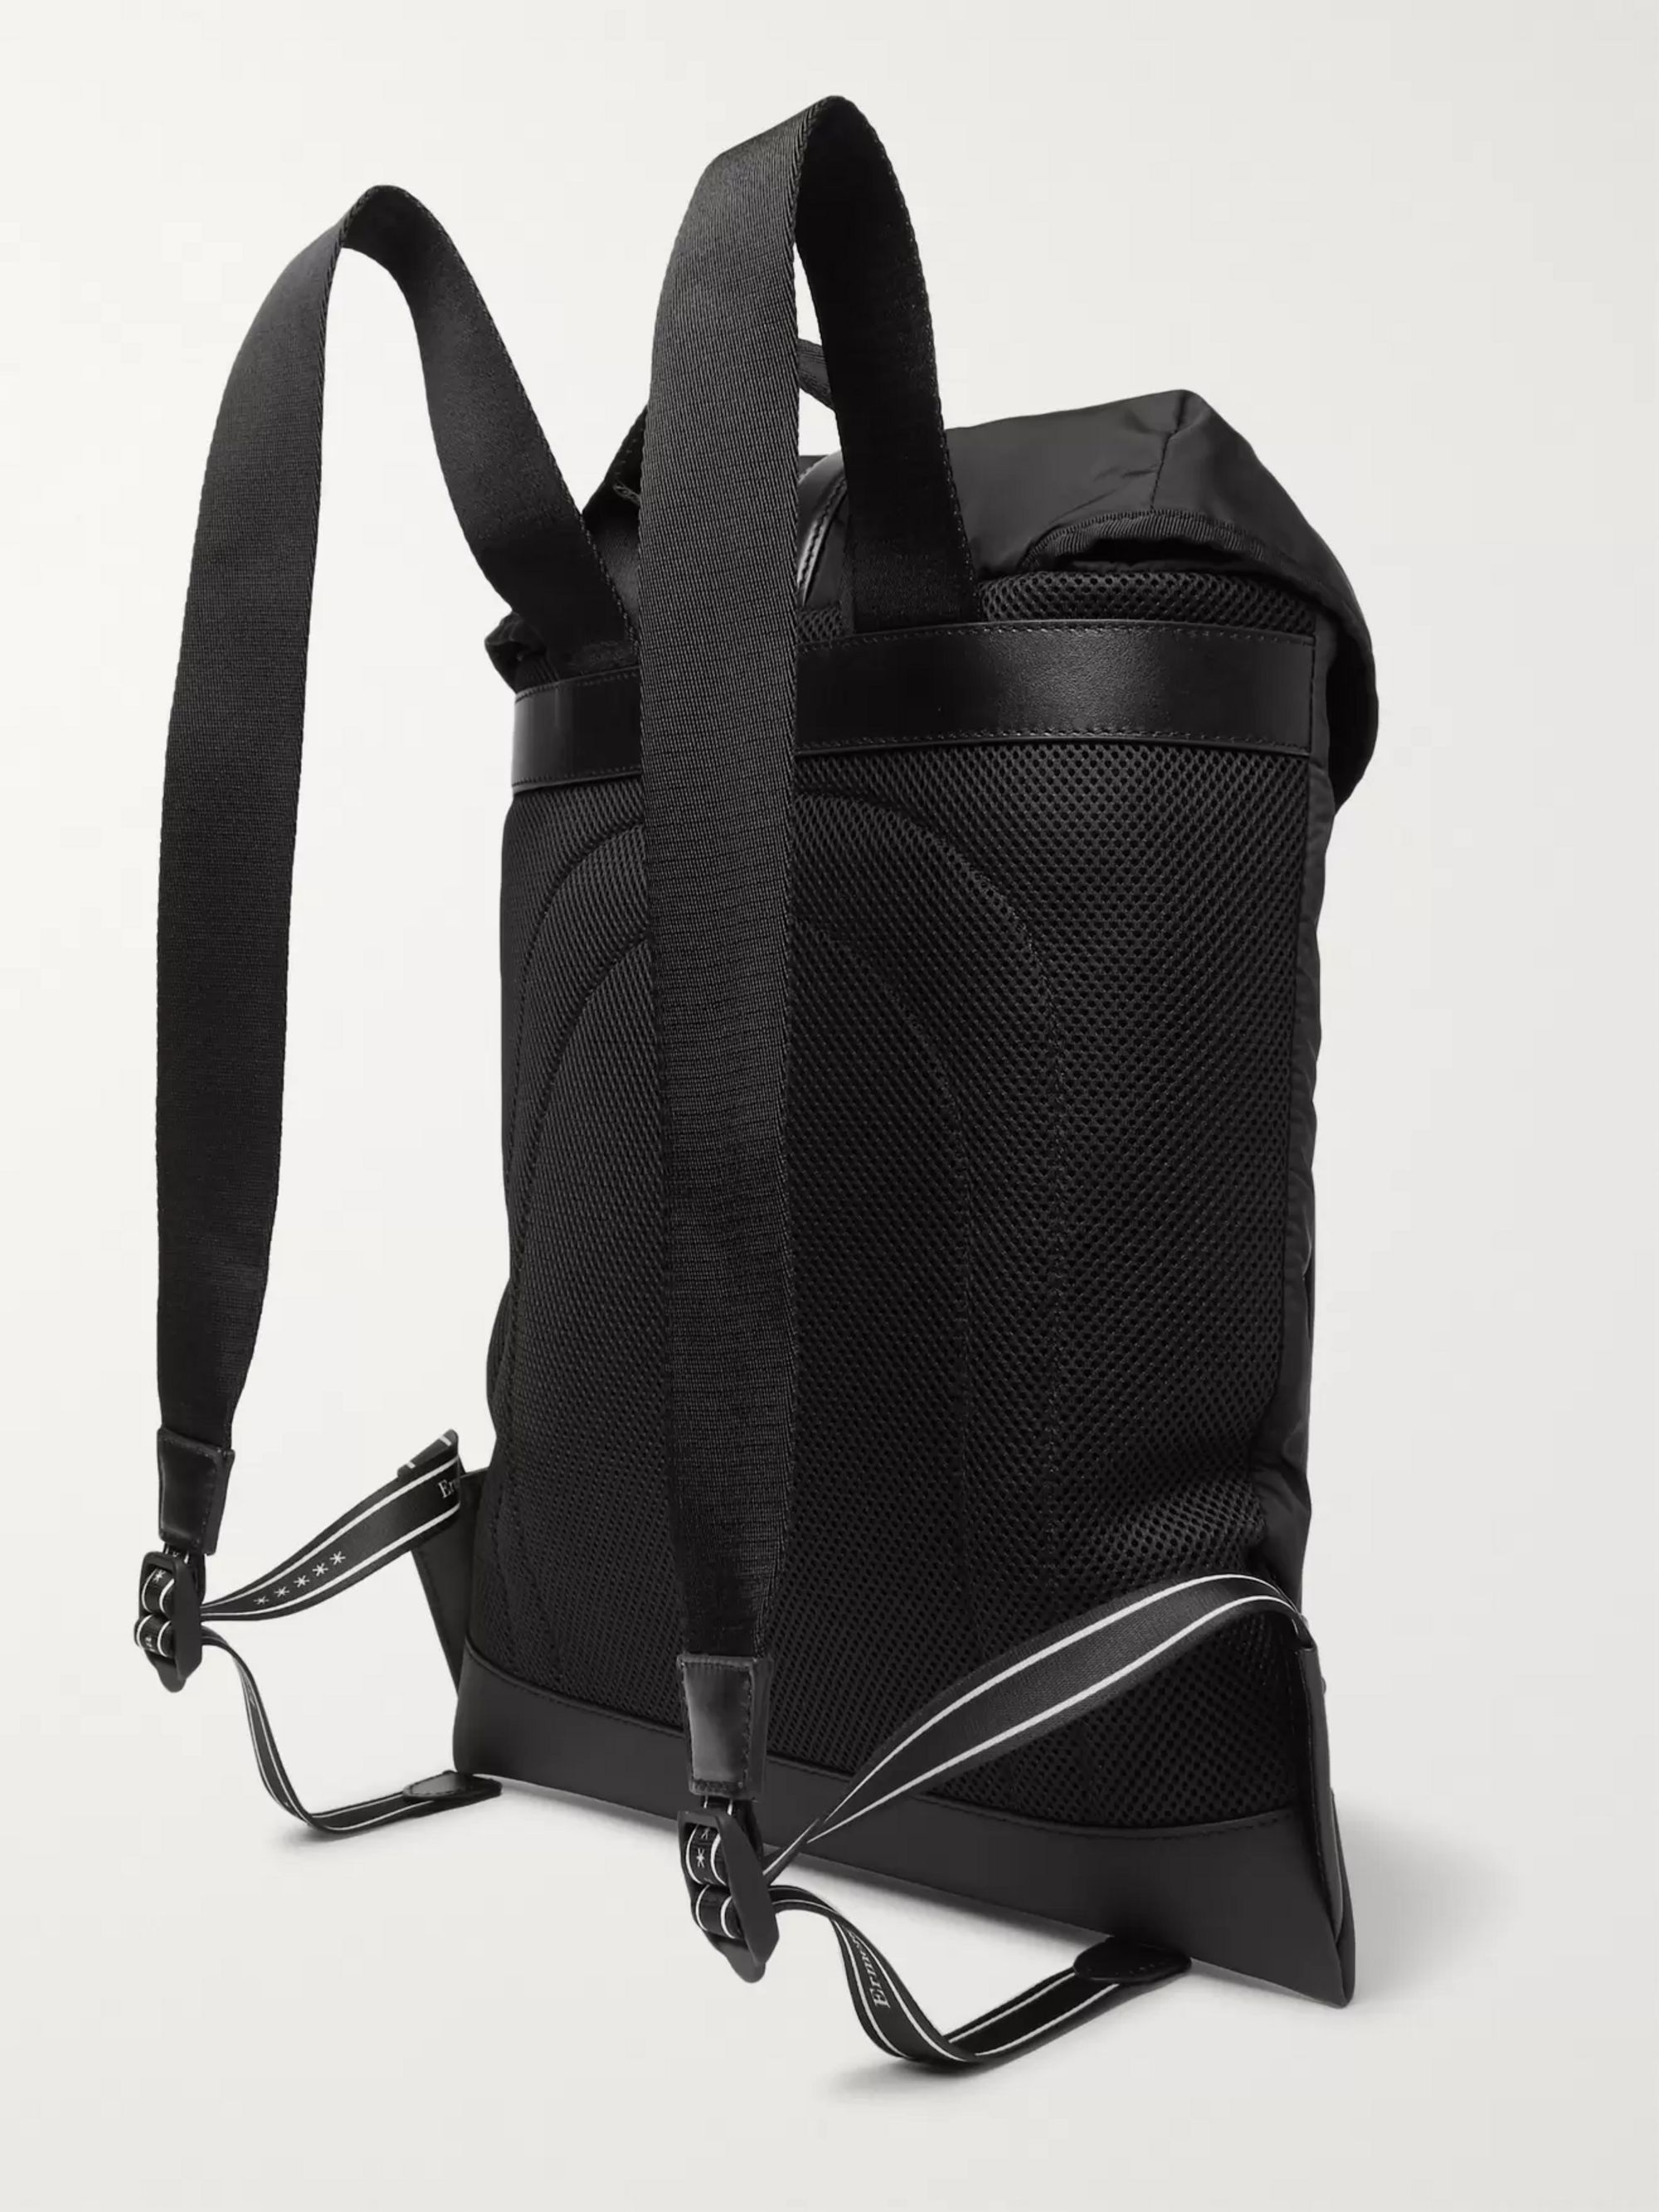 Ermenegildo Zegna Pelle Tessuta Leather and Nylon Backpack